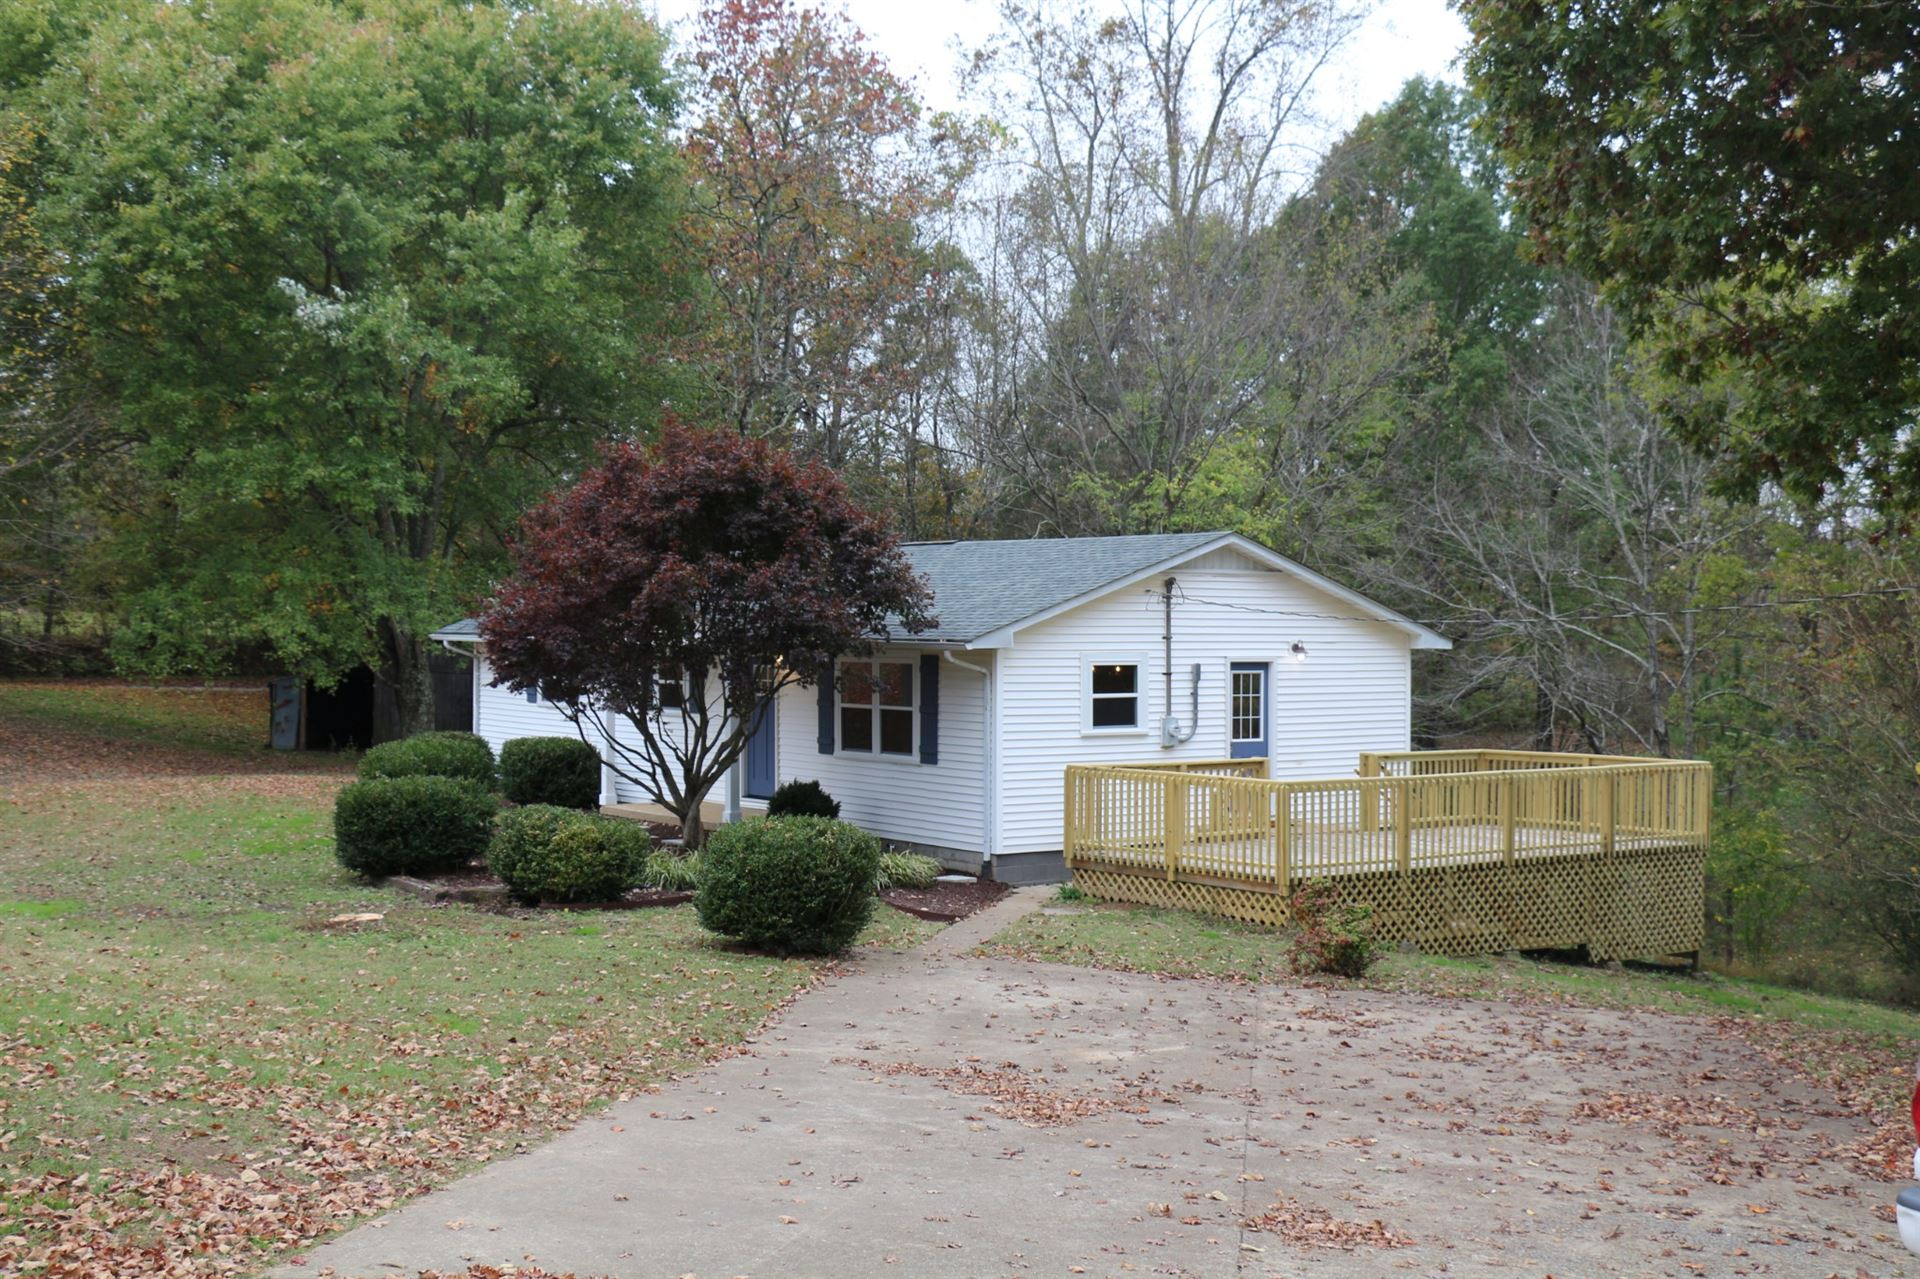 Photo of 1115 W Point Rd, Lawrenceburg, TN 38464 (MLS # 2201945)